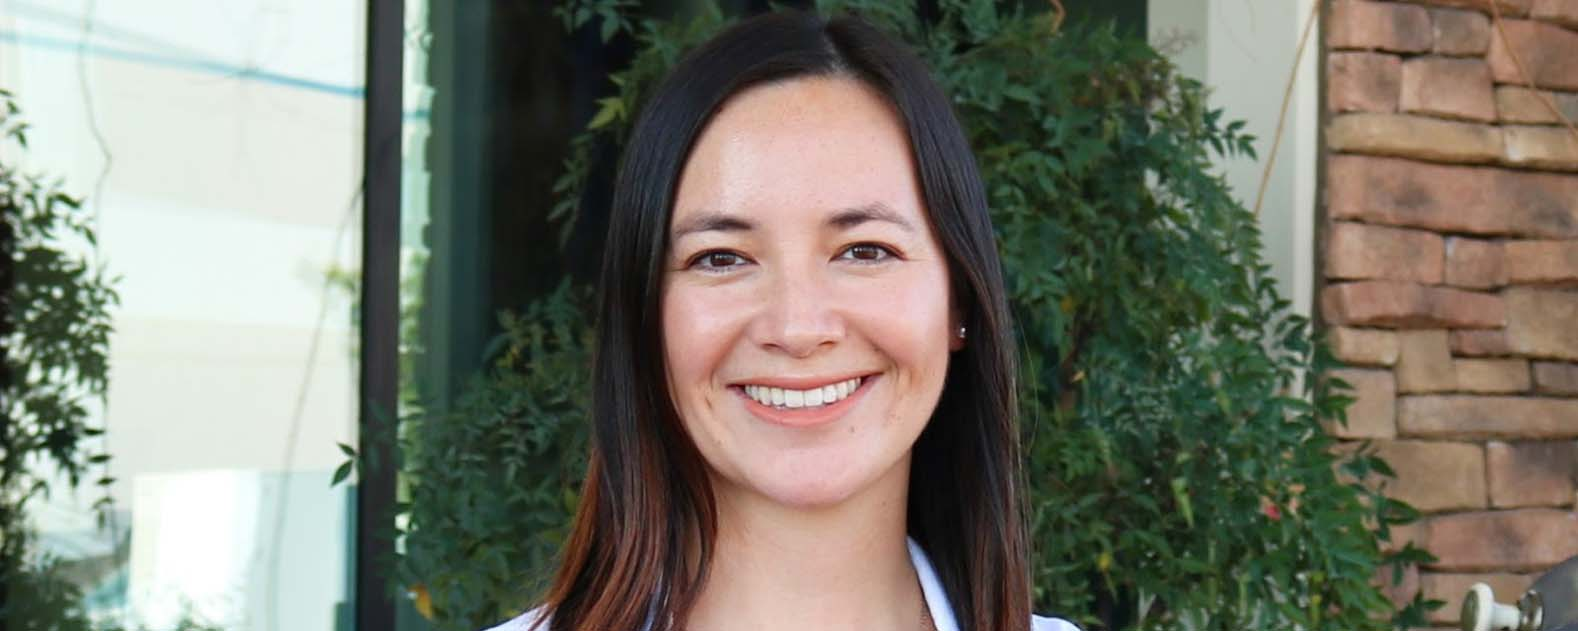 Meet Cassandra McDiarmid, a student in our College of Osteopathic Medicine